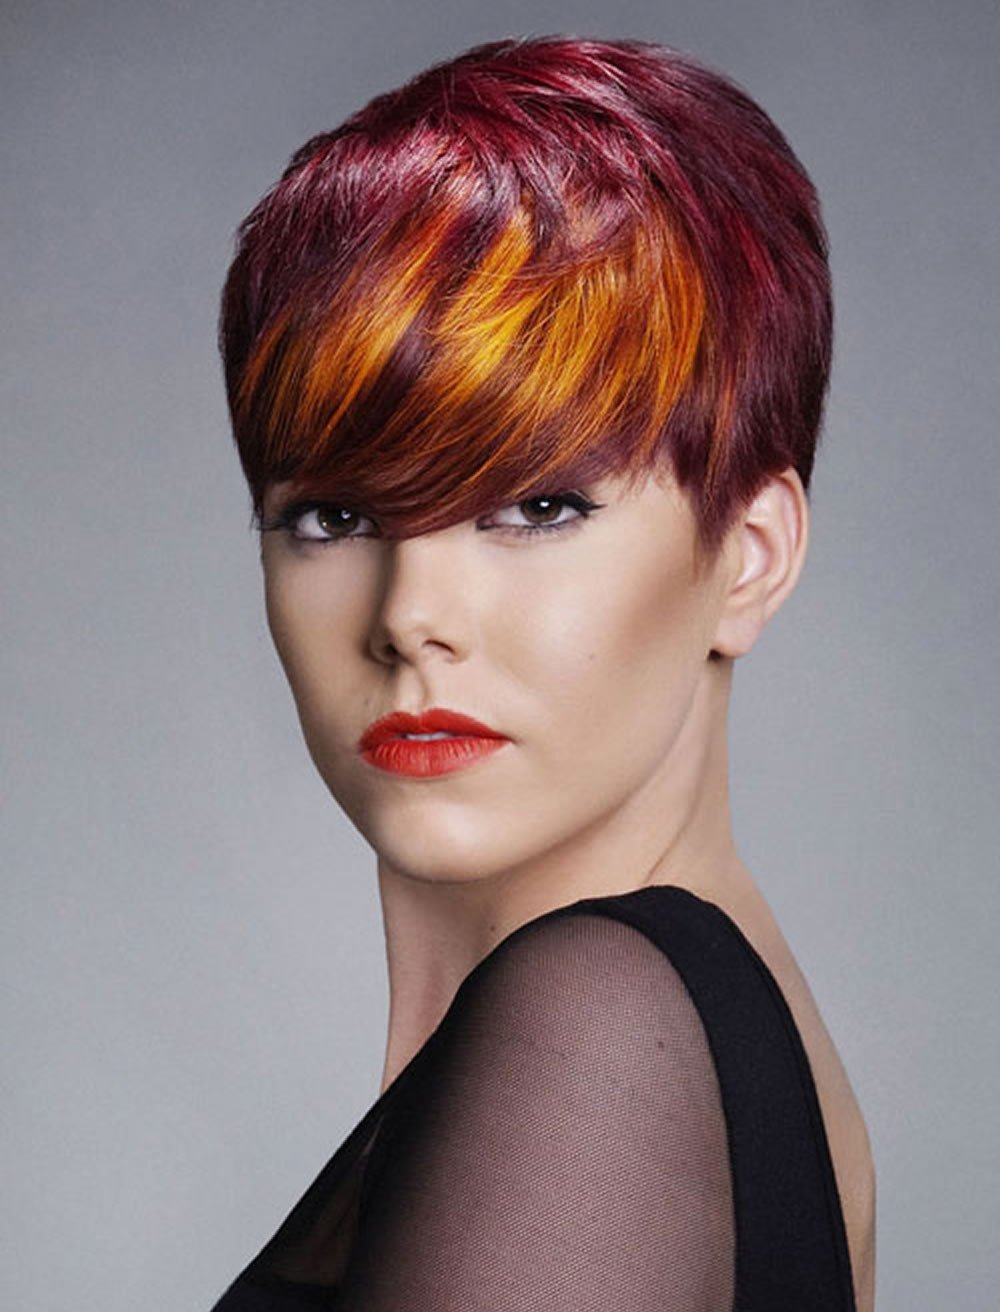 New Red Hair Color For Short Hairstyles 27 Cool Haircut Ideas With Pictures